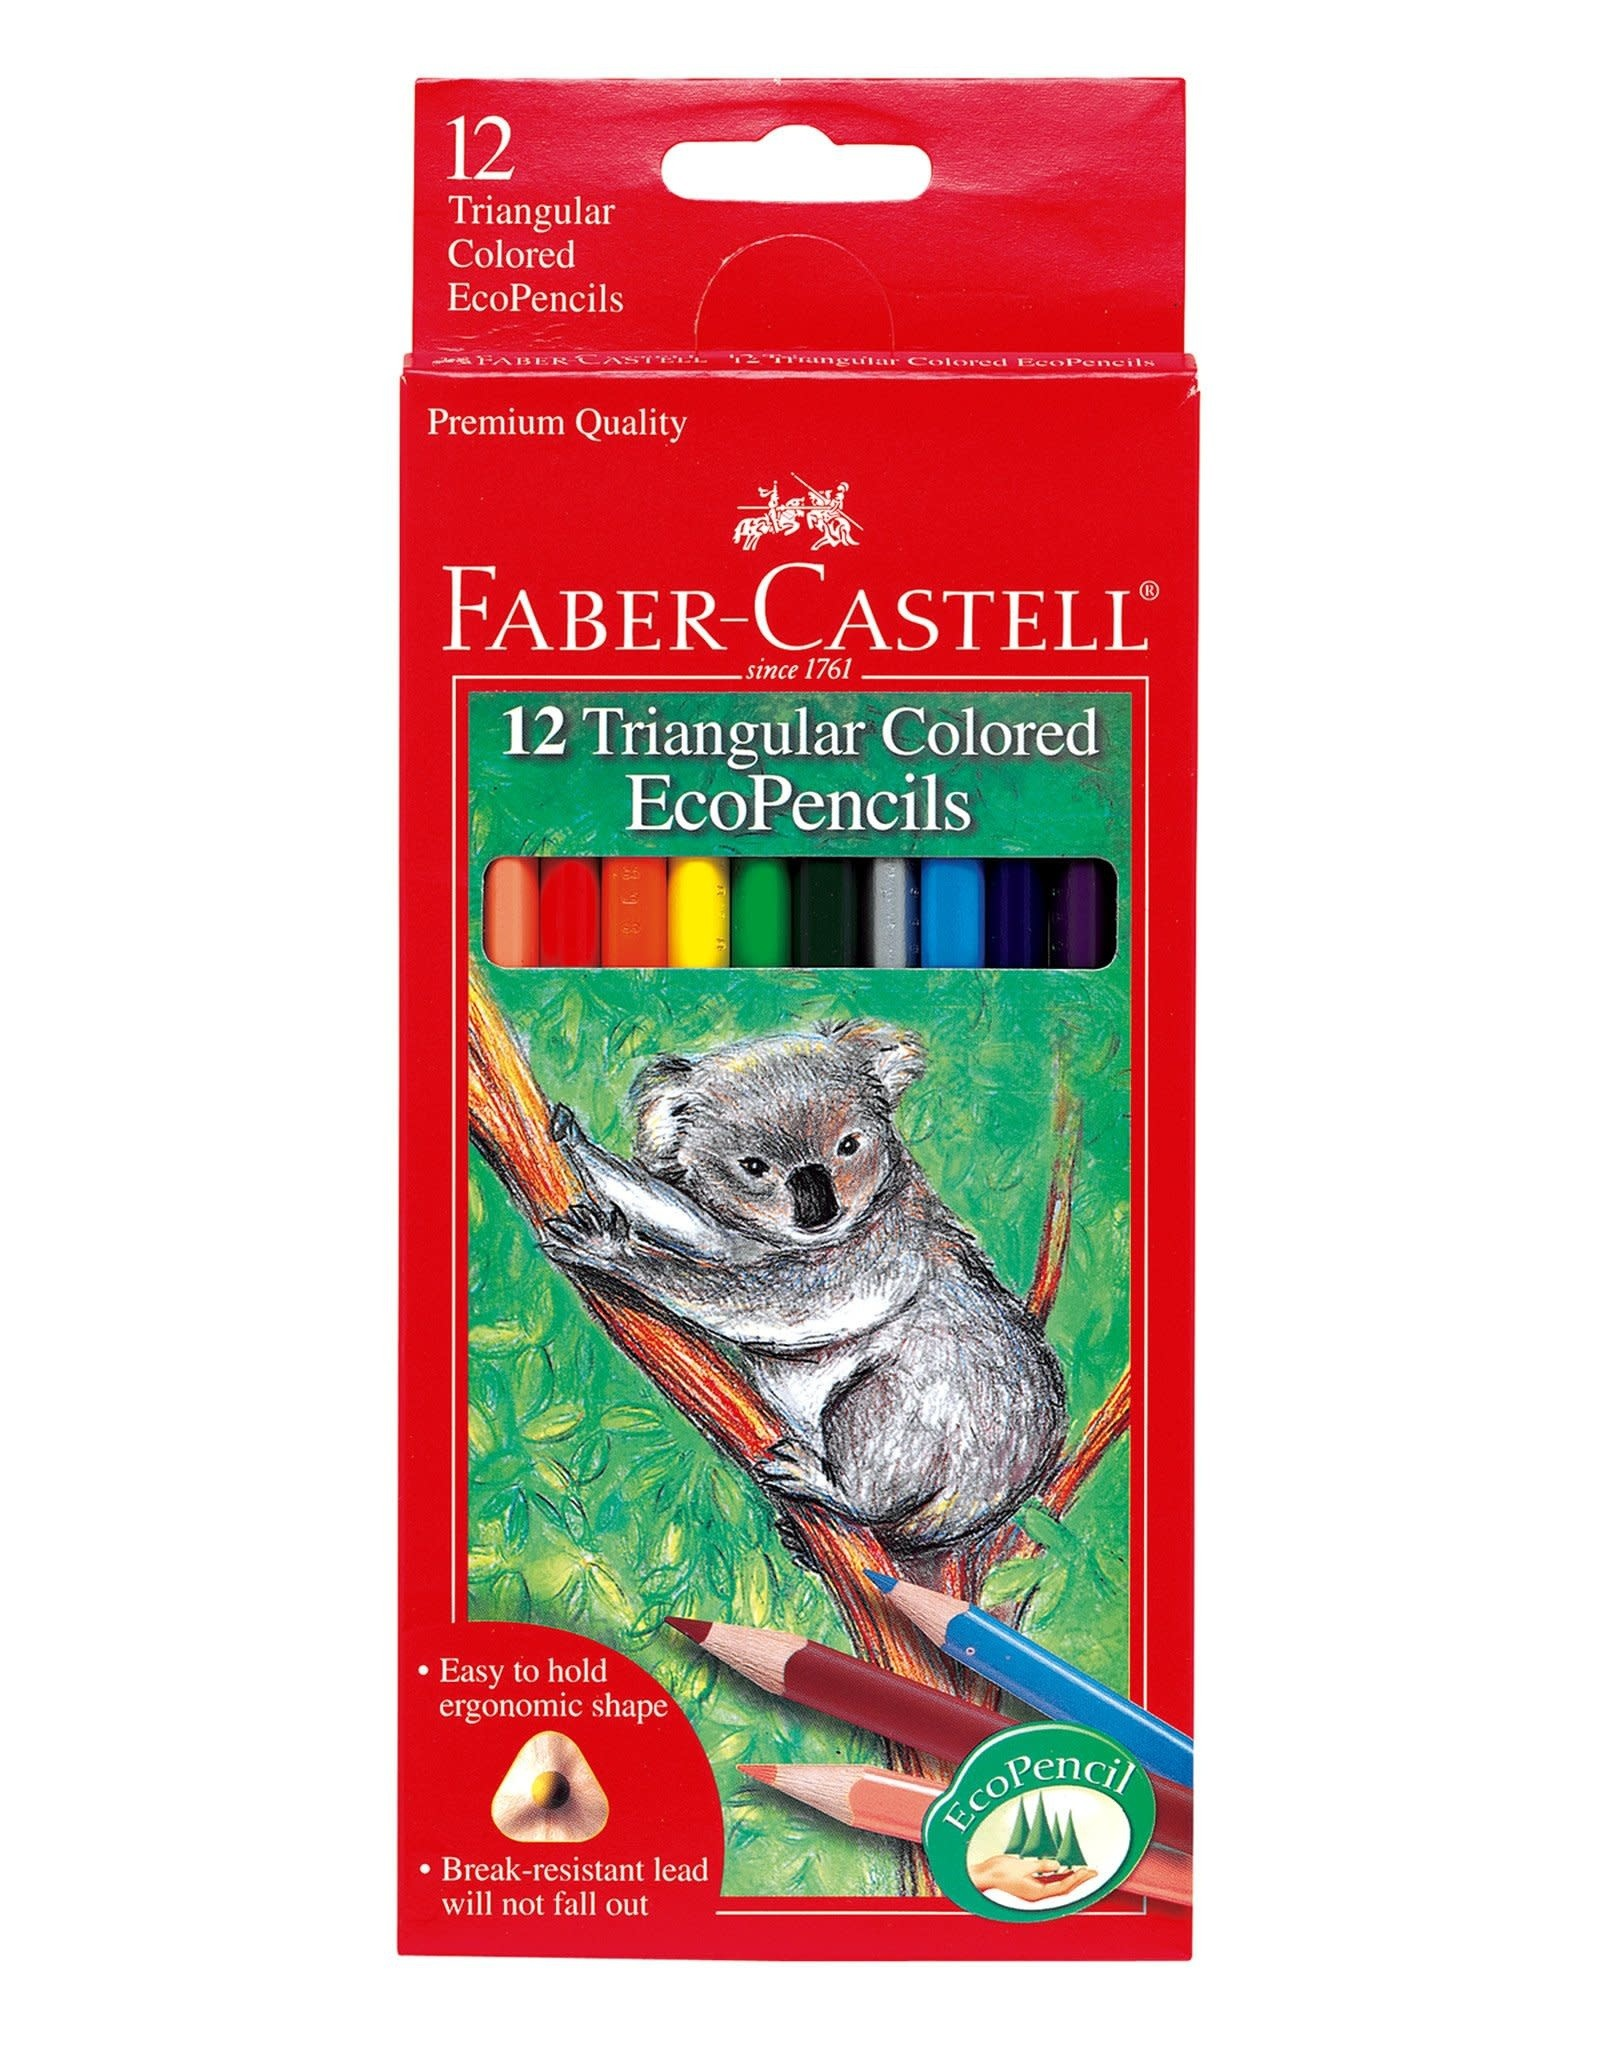 FABER-CASTELL Faber-Castell 12ct Triangular Colored EcoPencils